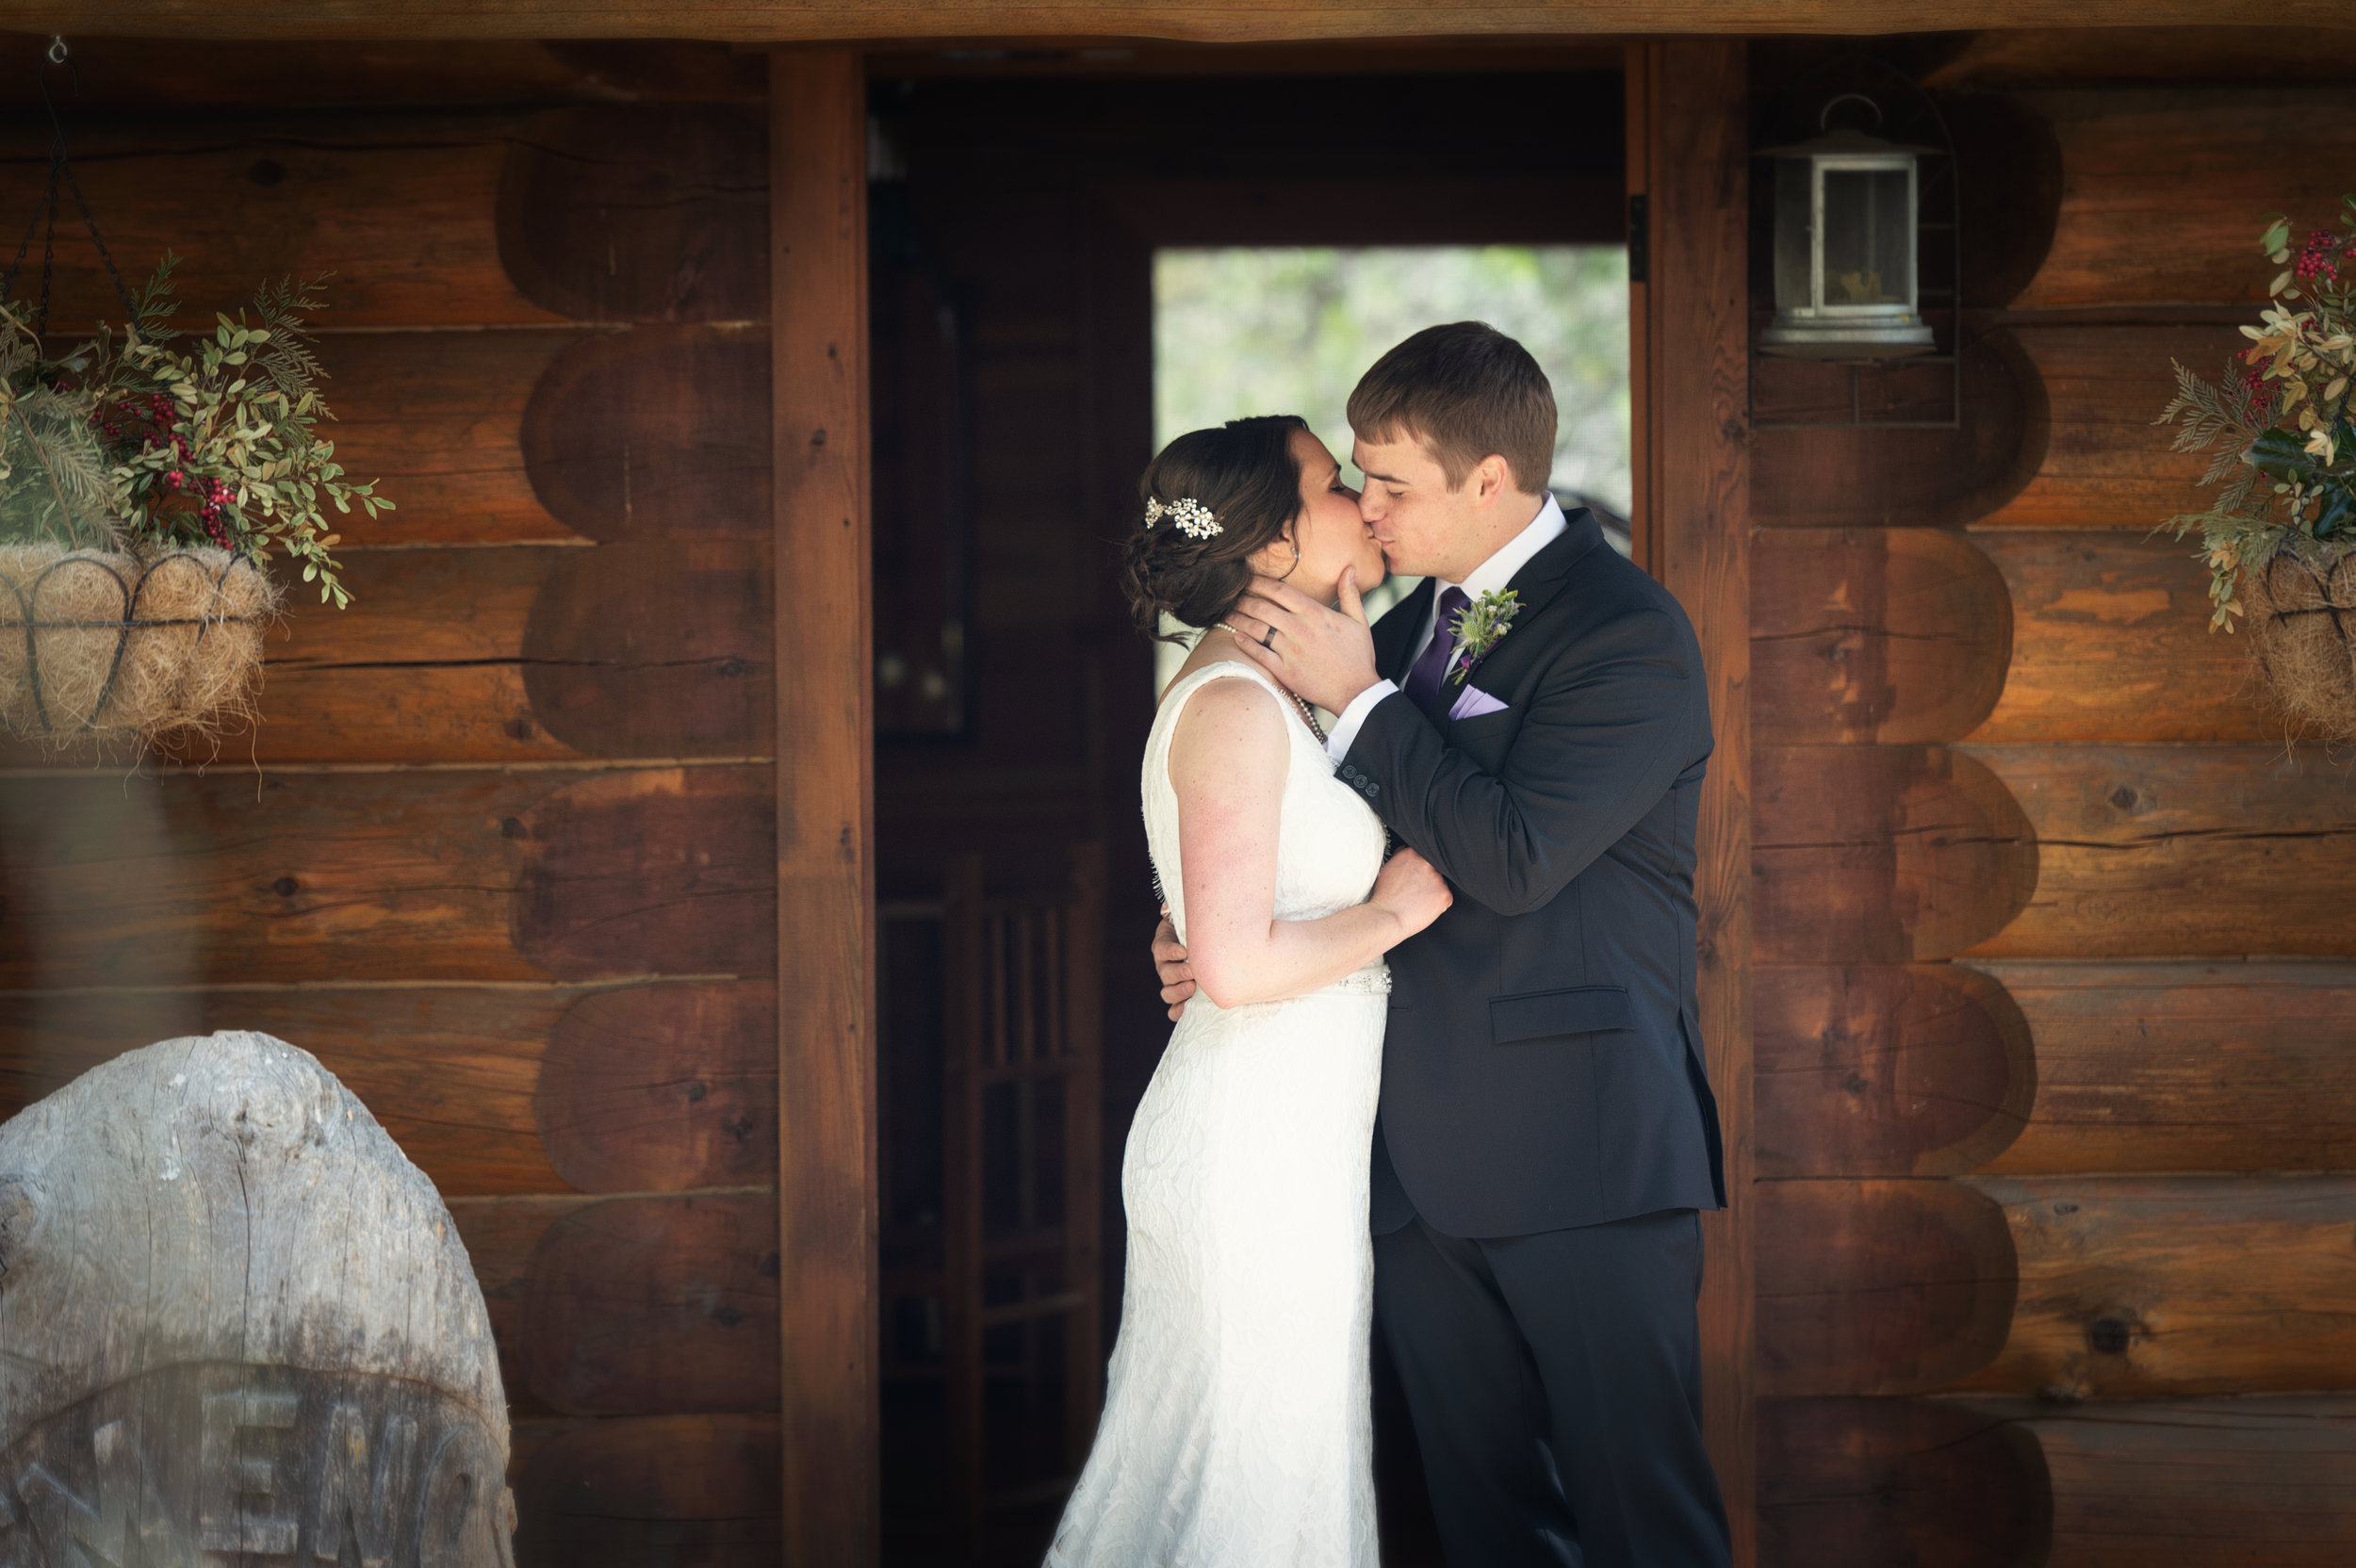 Romantic Elopement at Tin Poppy Retreat in British Columbia 9.jpg